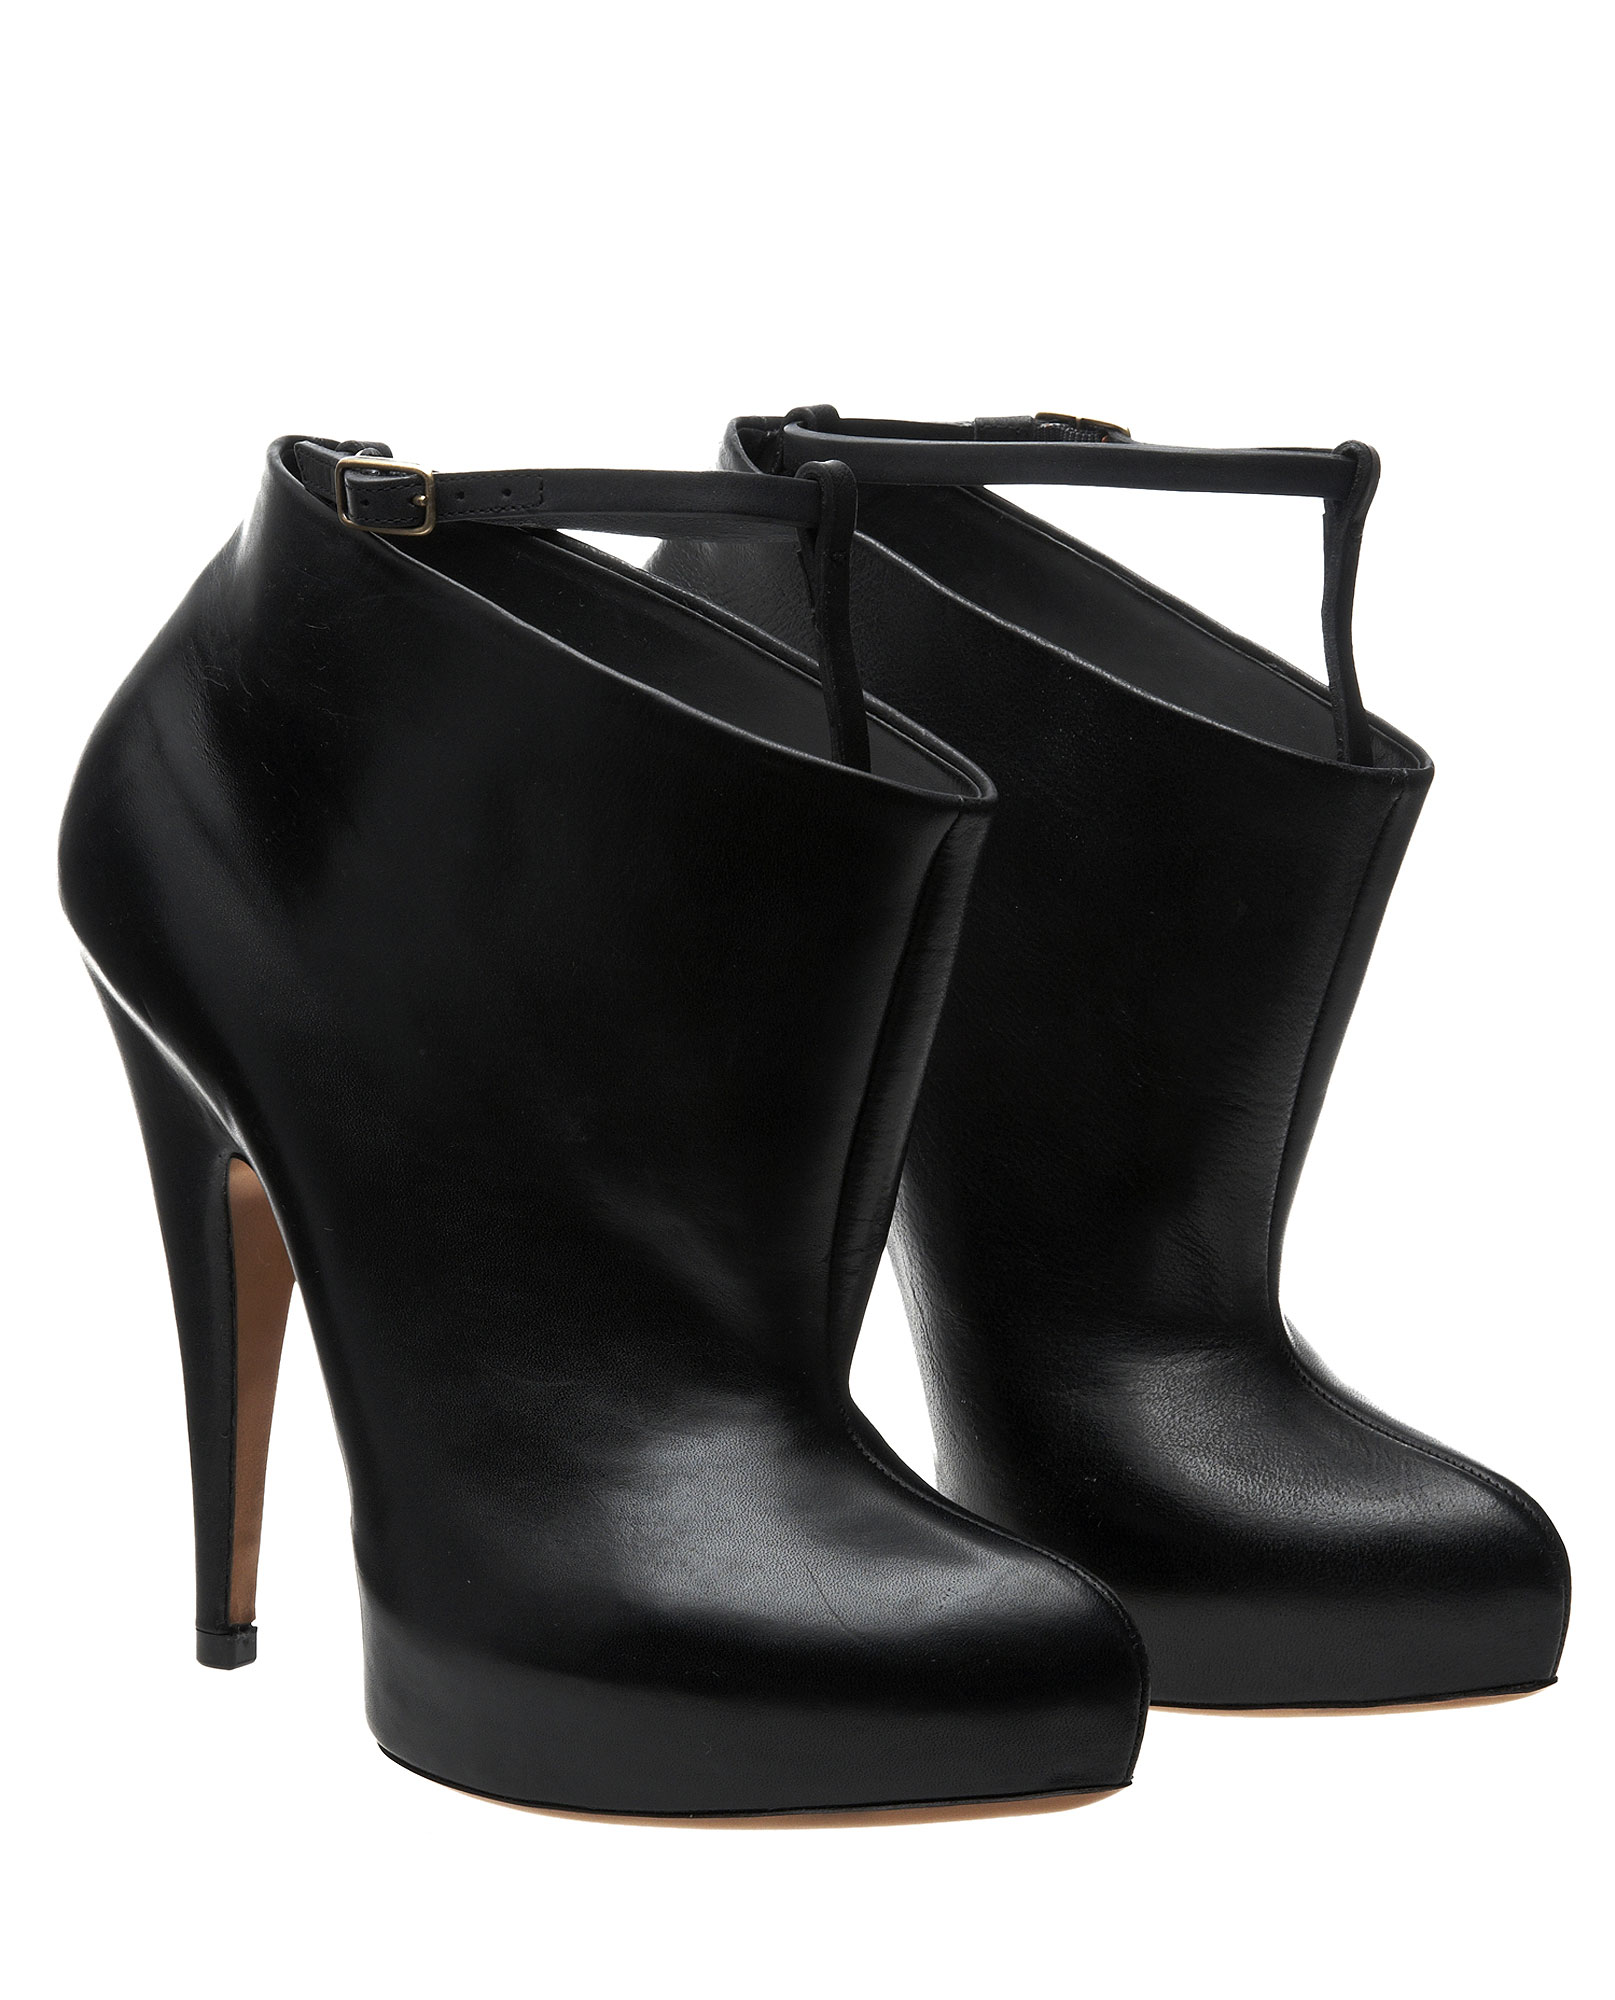 bb23c52eb70e Givenchy Fetish Ankle Boot with Strap in Black - Lyst